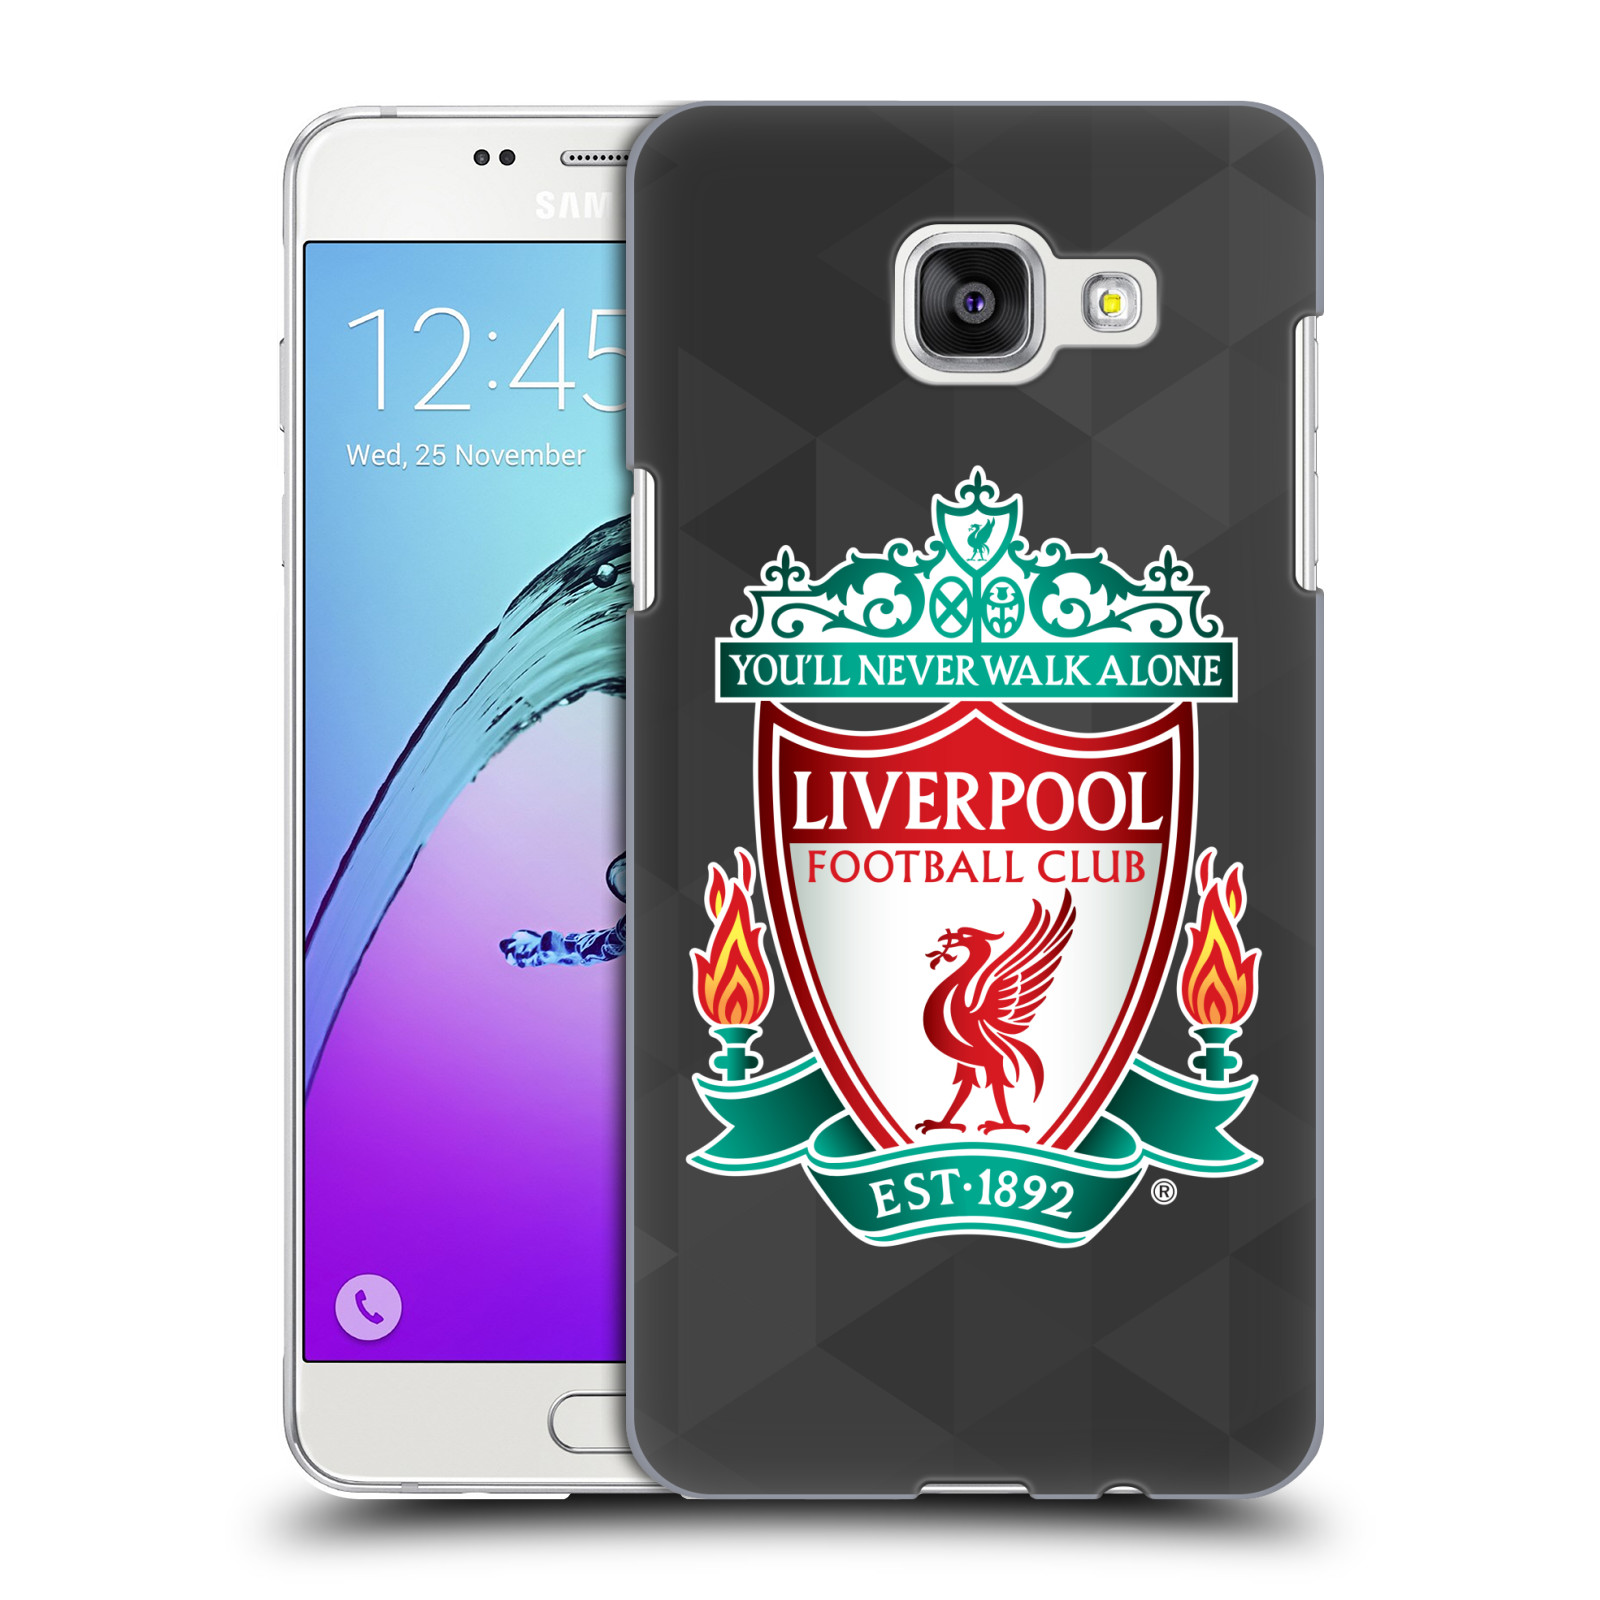 Plastové pouzdro na mobil Samsung Galaxy A5 (2016) HEAD CASE ZNAK LIVERPOOL FC OFFICIAL GEOMETRIC BLACK